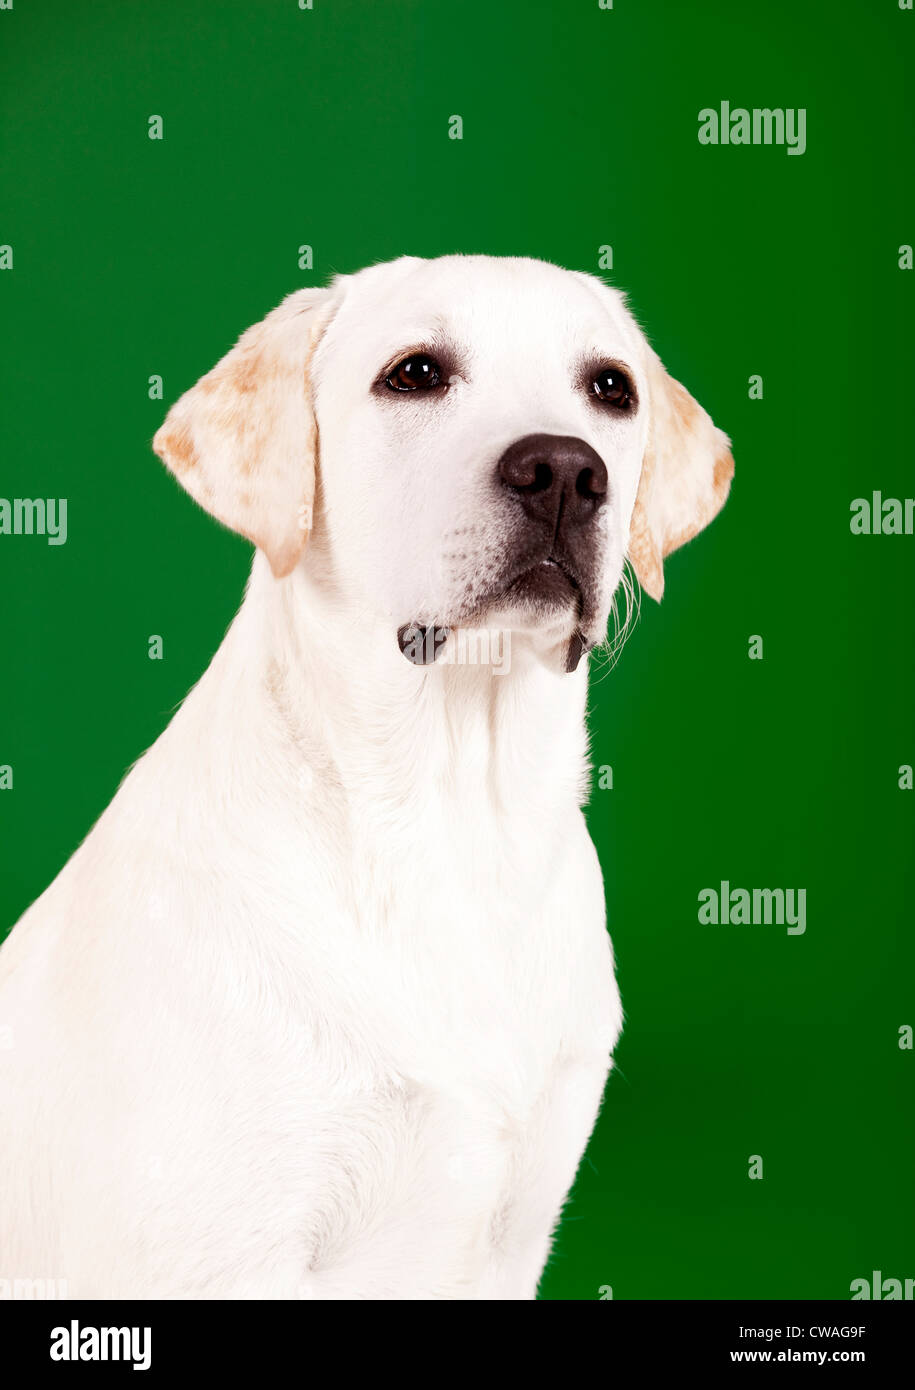 Beautiful dog of breed Labrador sitting and isolated on green - Stock Image